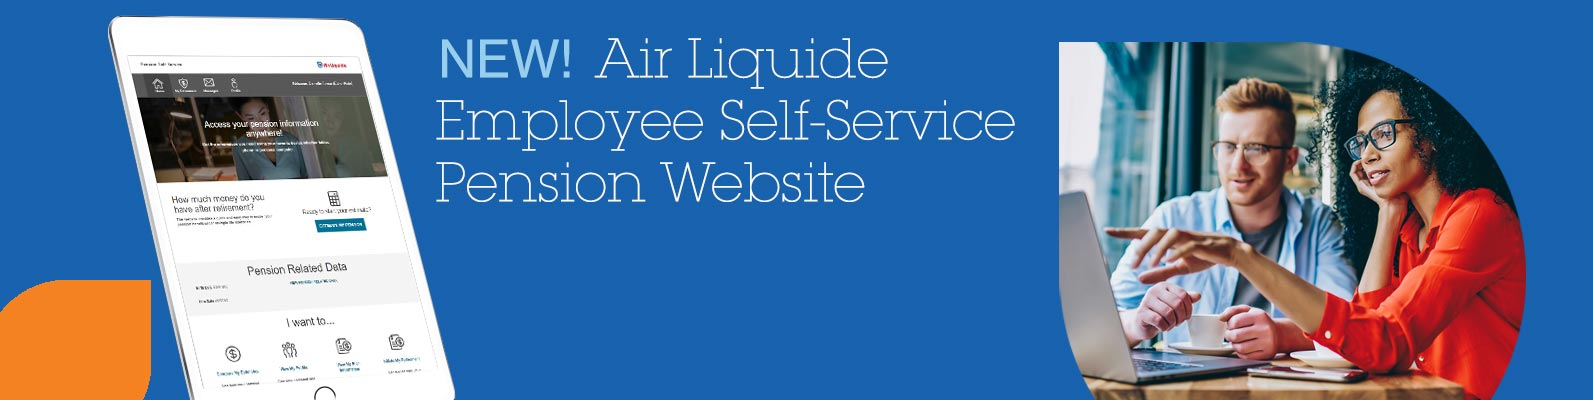 New! Air Liquide Employee Self-Service Pension Website